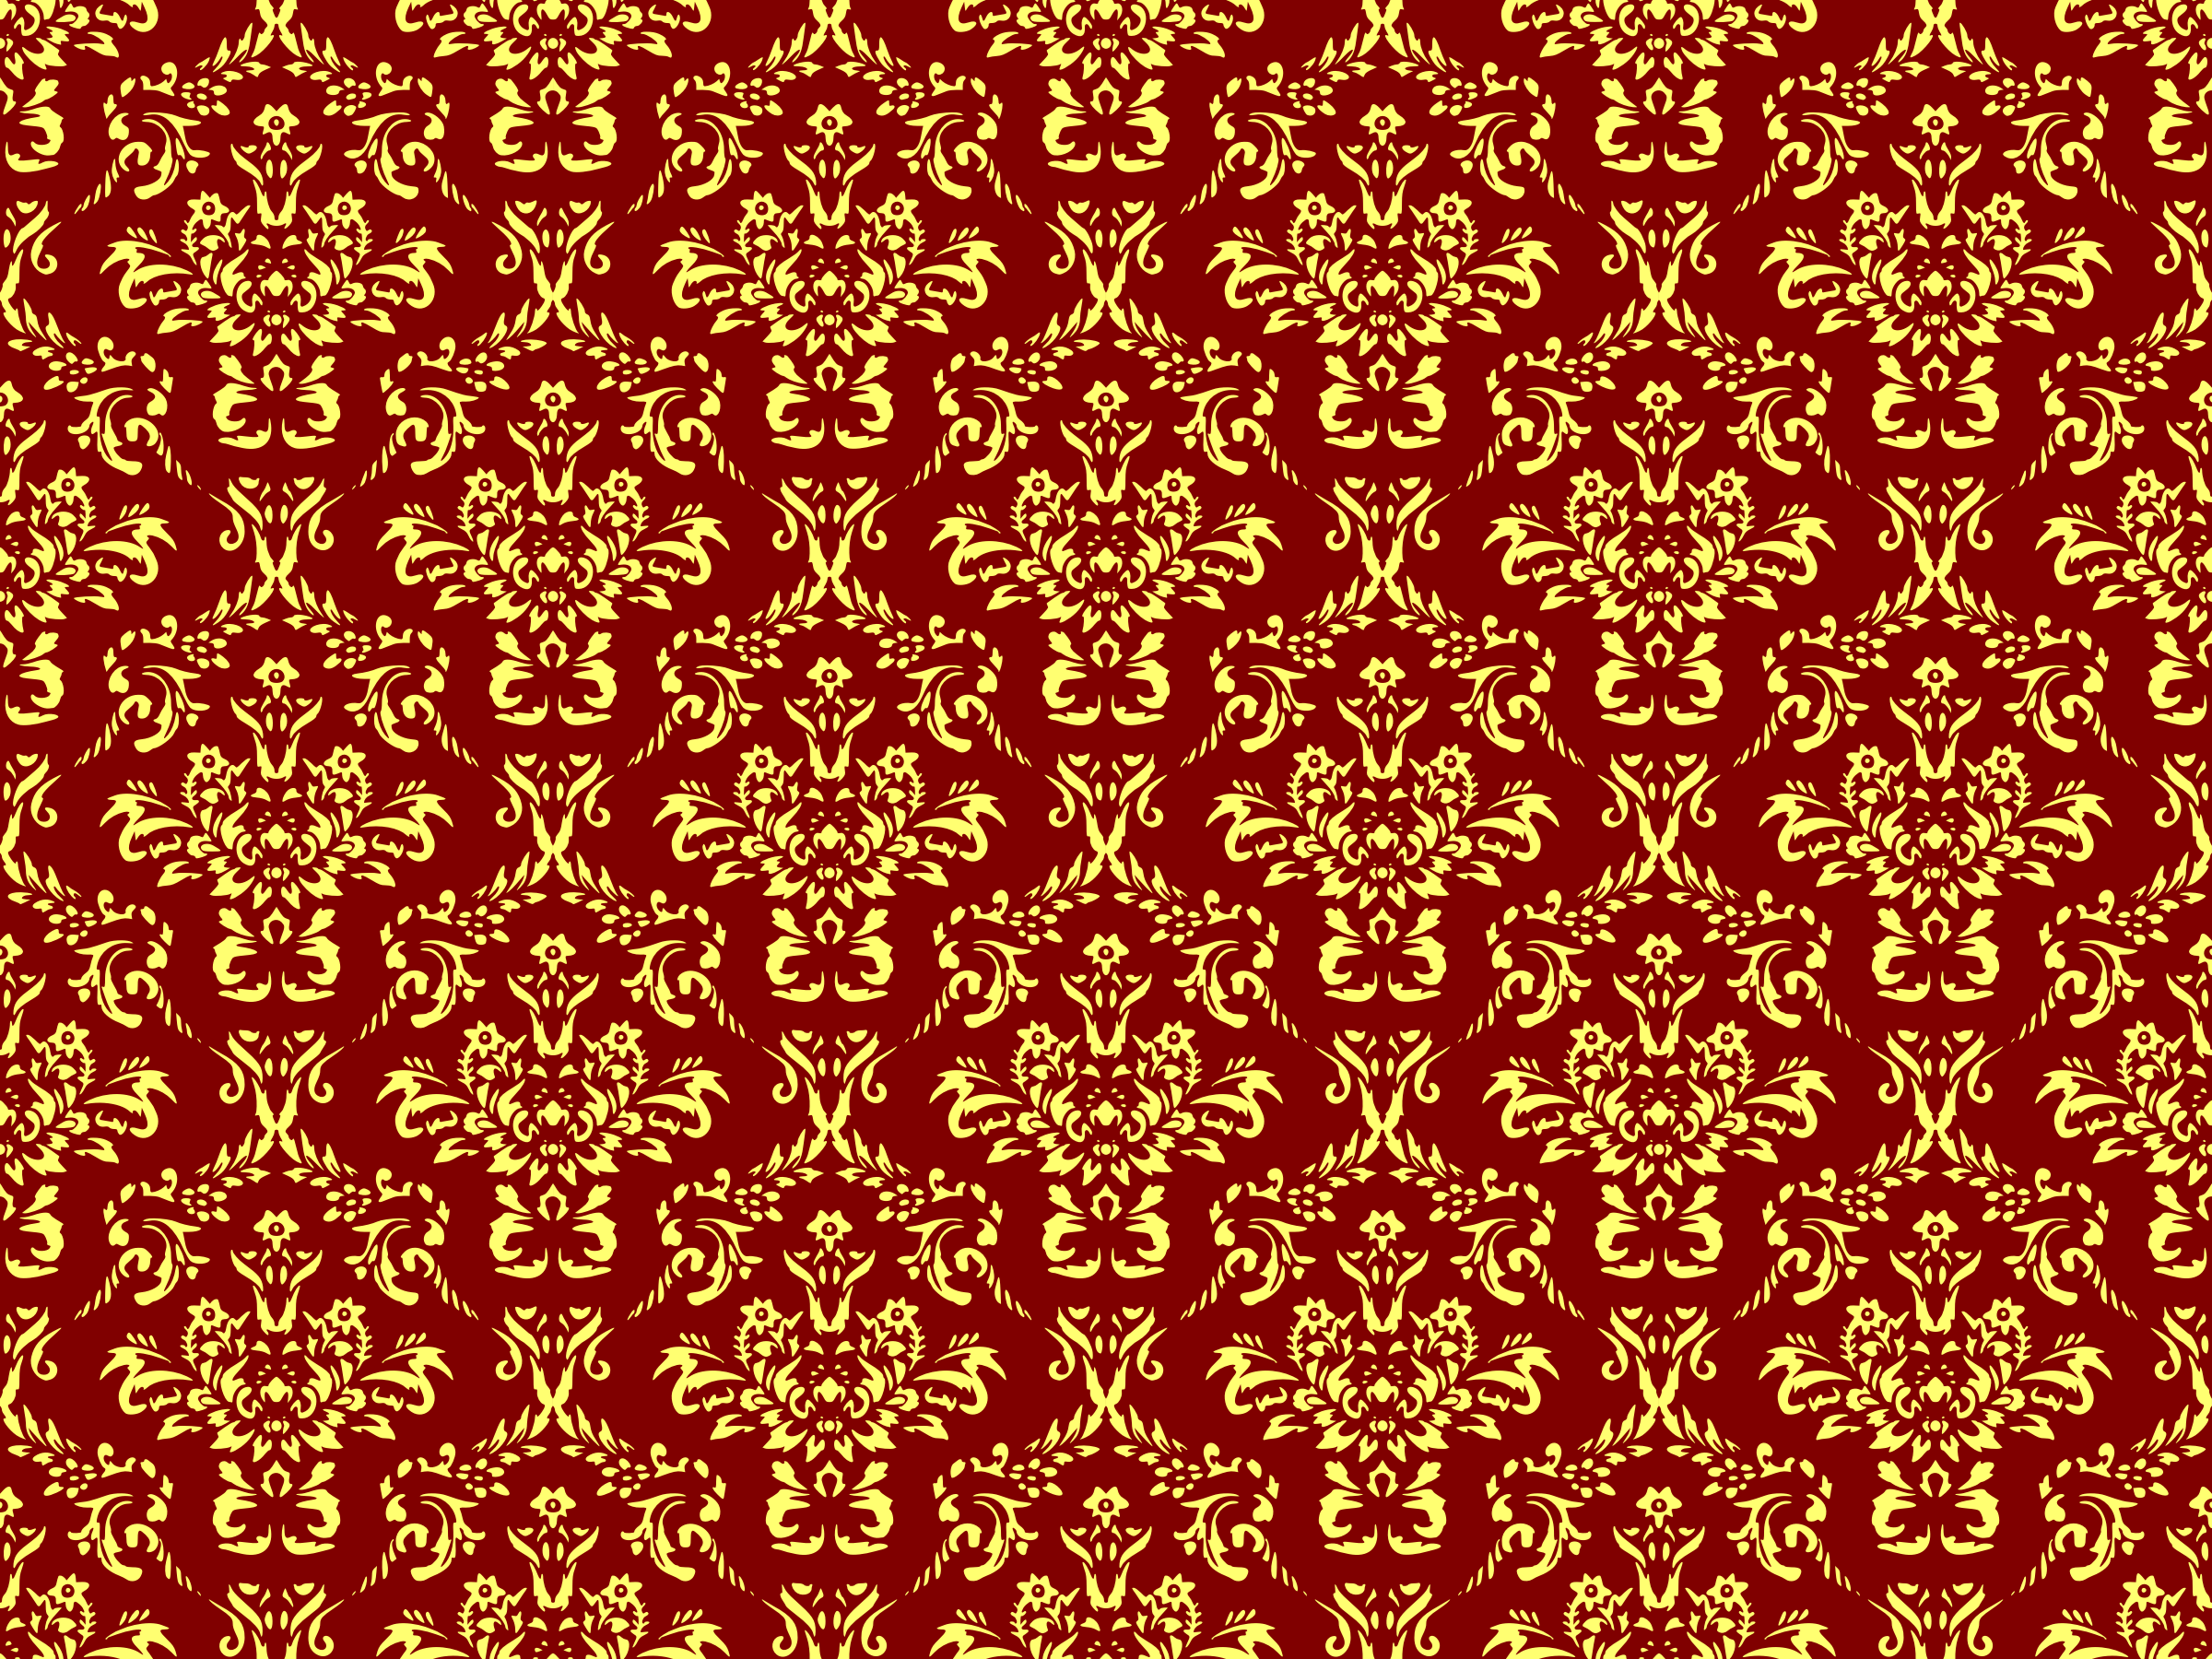 Background pattern 334 (colour) by Firkin